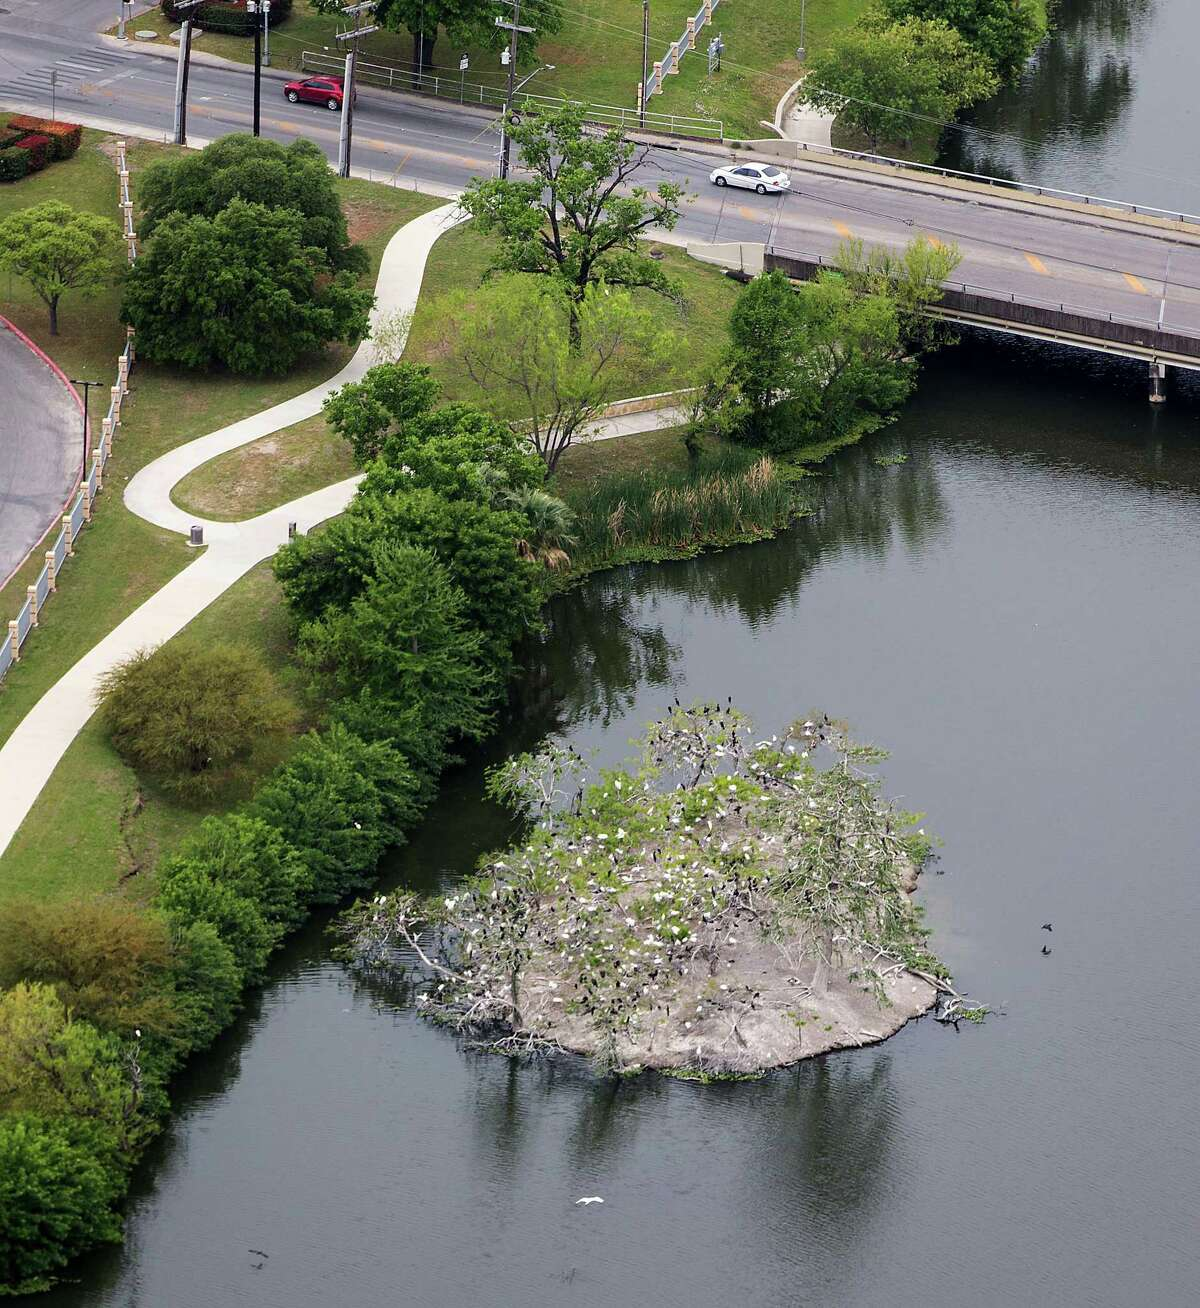 A Cattle Egret rookery on the so-called Bird Island in Elmendorf Lake is seen in a Tuesday, April 3, 2019 aerial photo.